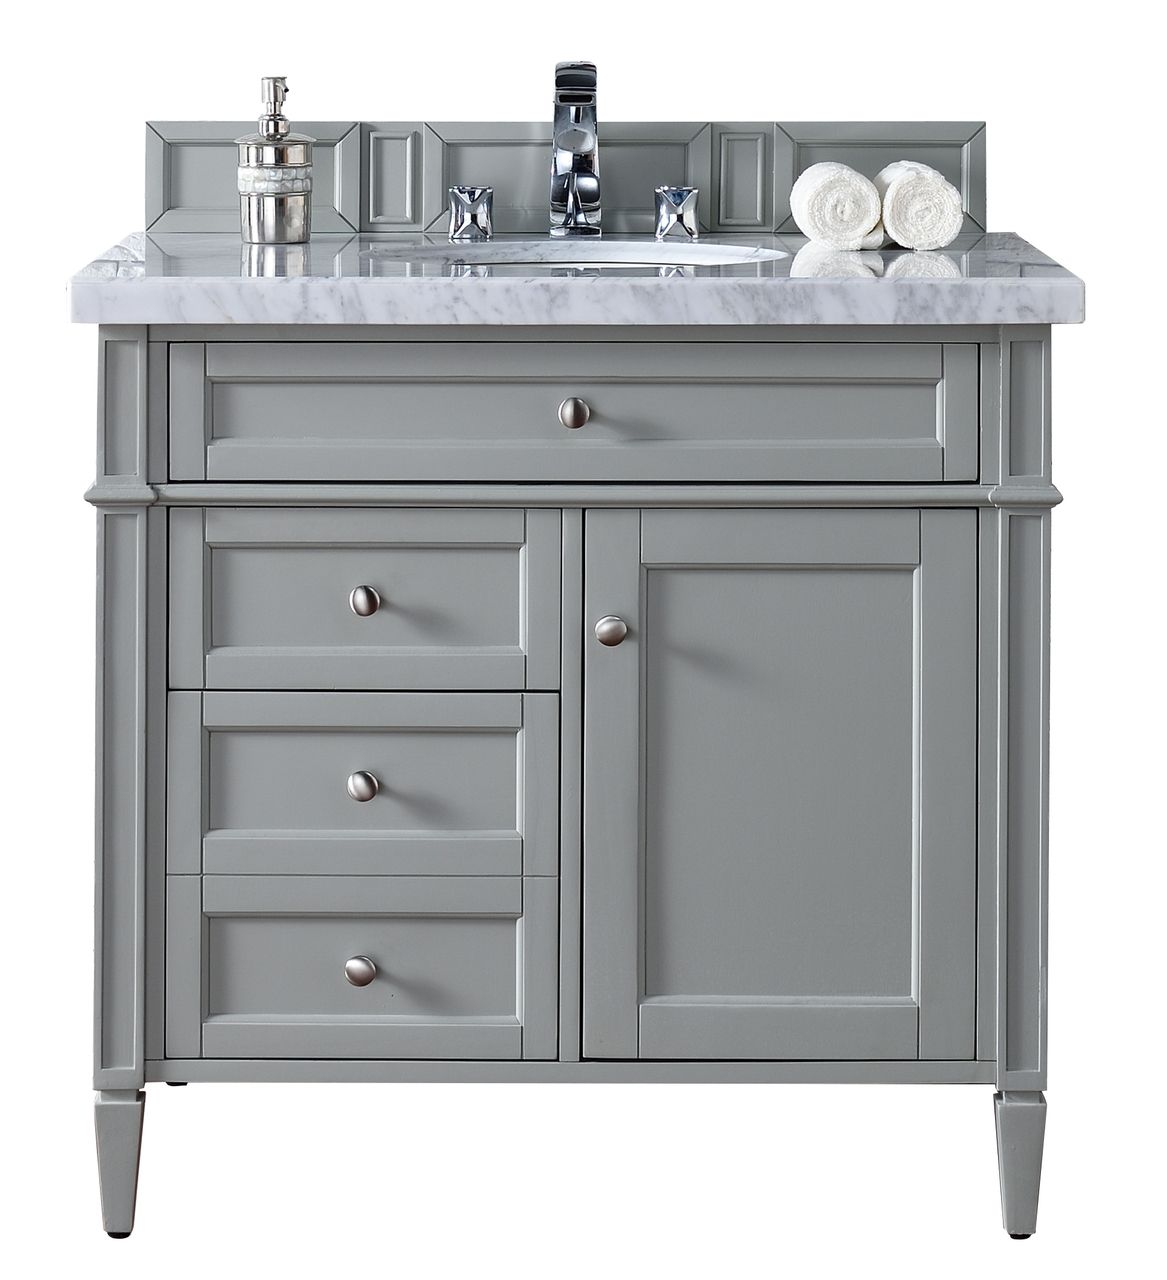 Contemporary bathroom vanities 36 inch - 36 Brittany Single Bathroom Vanity Urban Gray